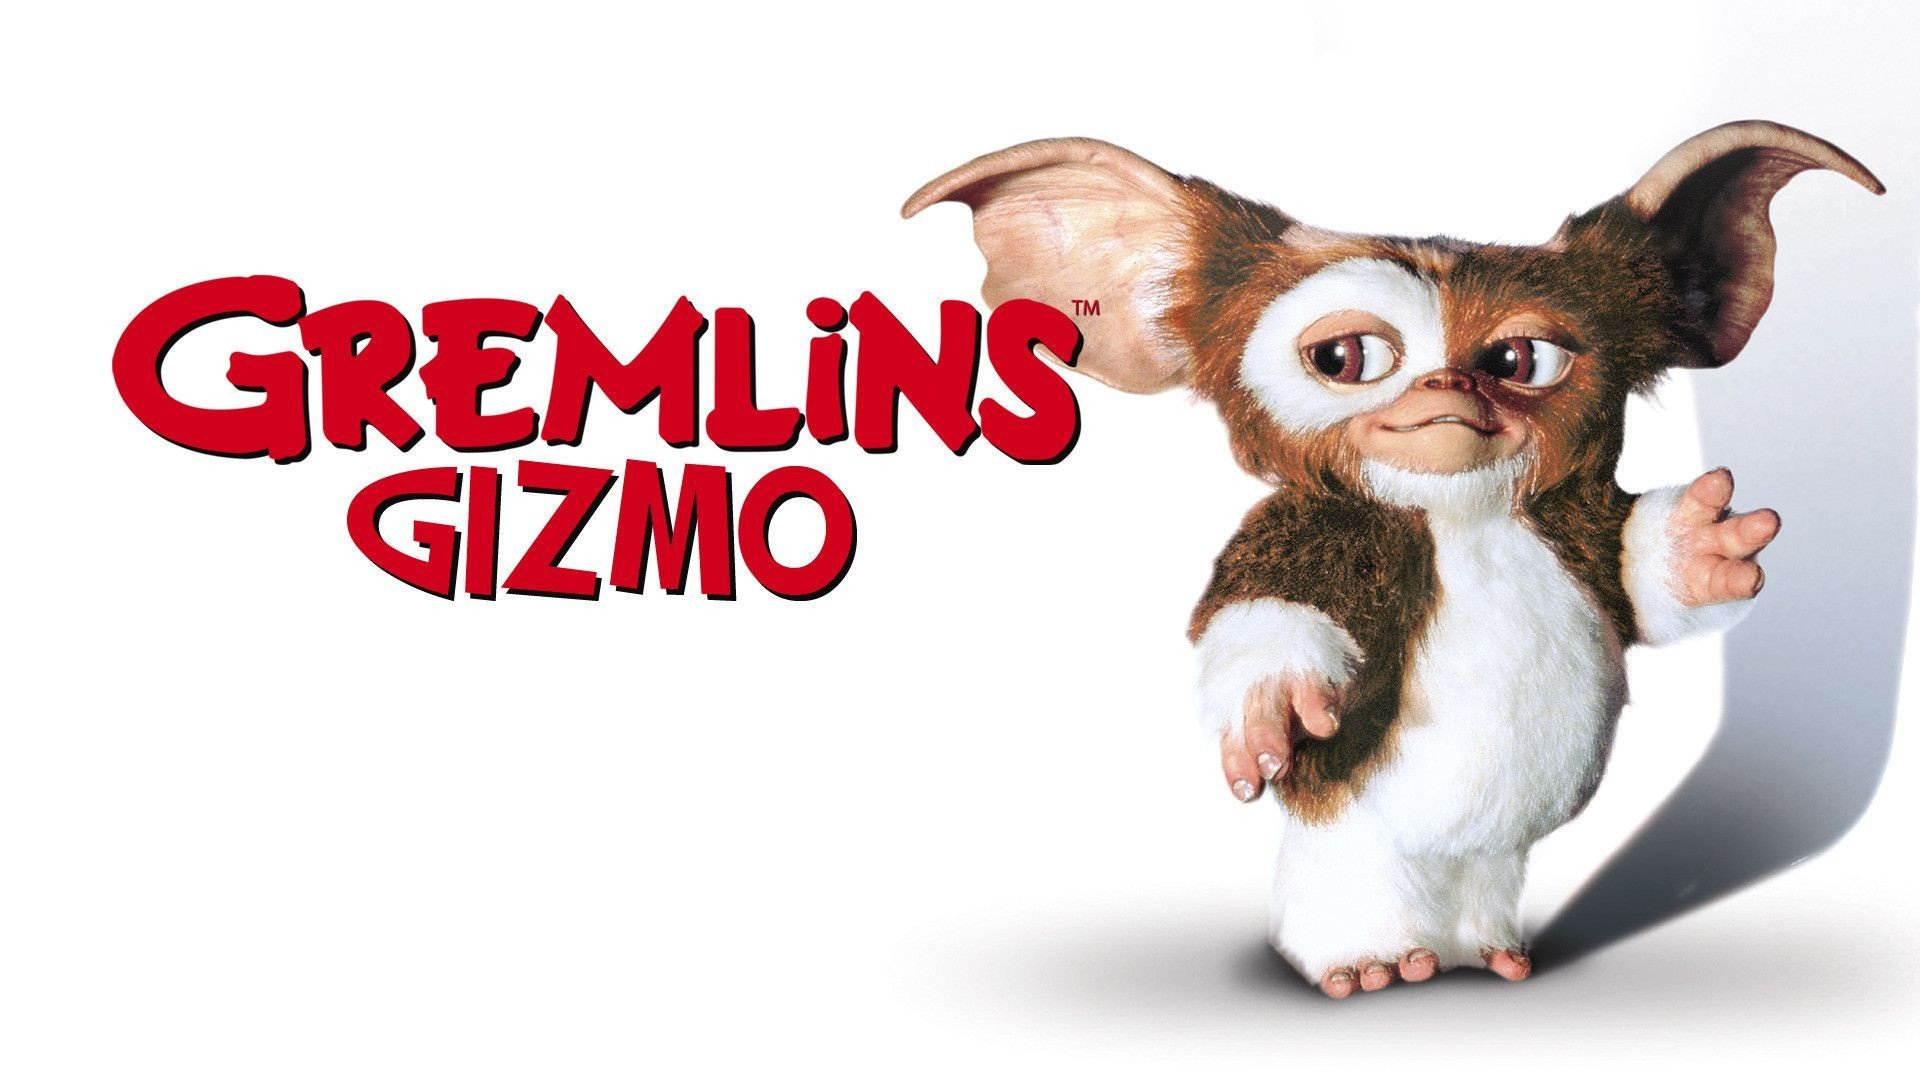 Res: 1920x1080, Gizmo Gremlins Wallpapers - Wallpaper Cave